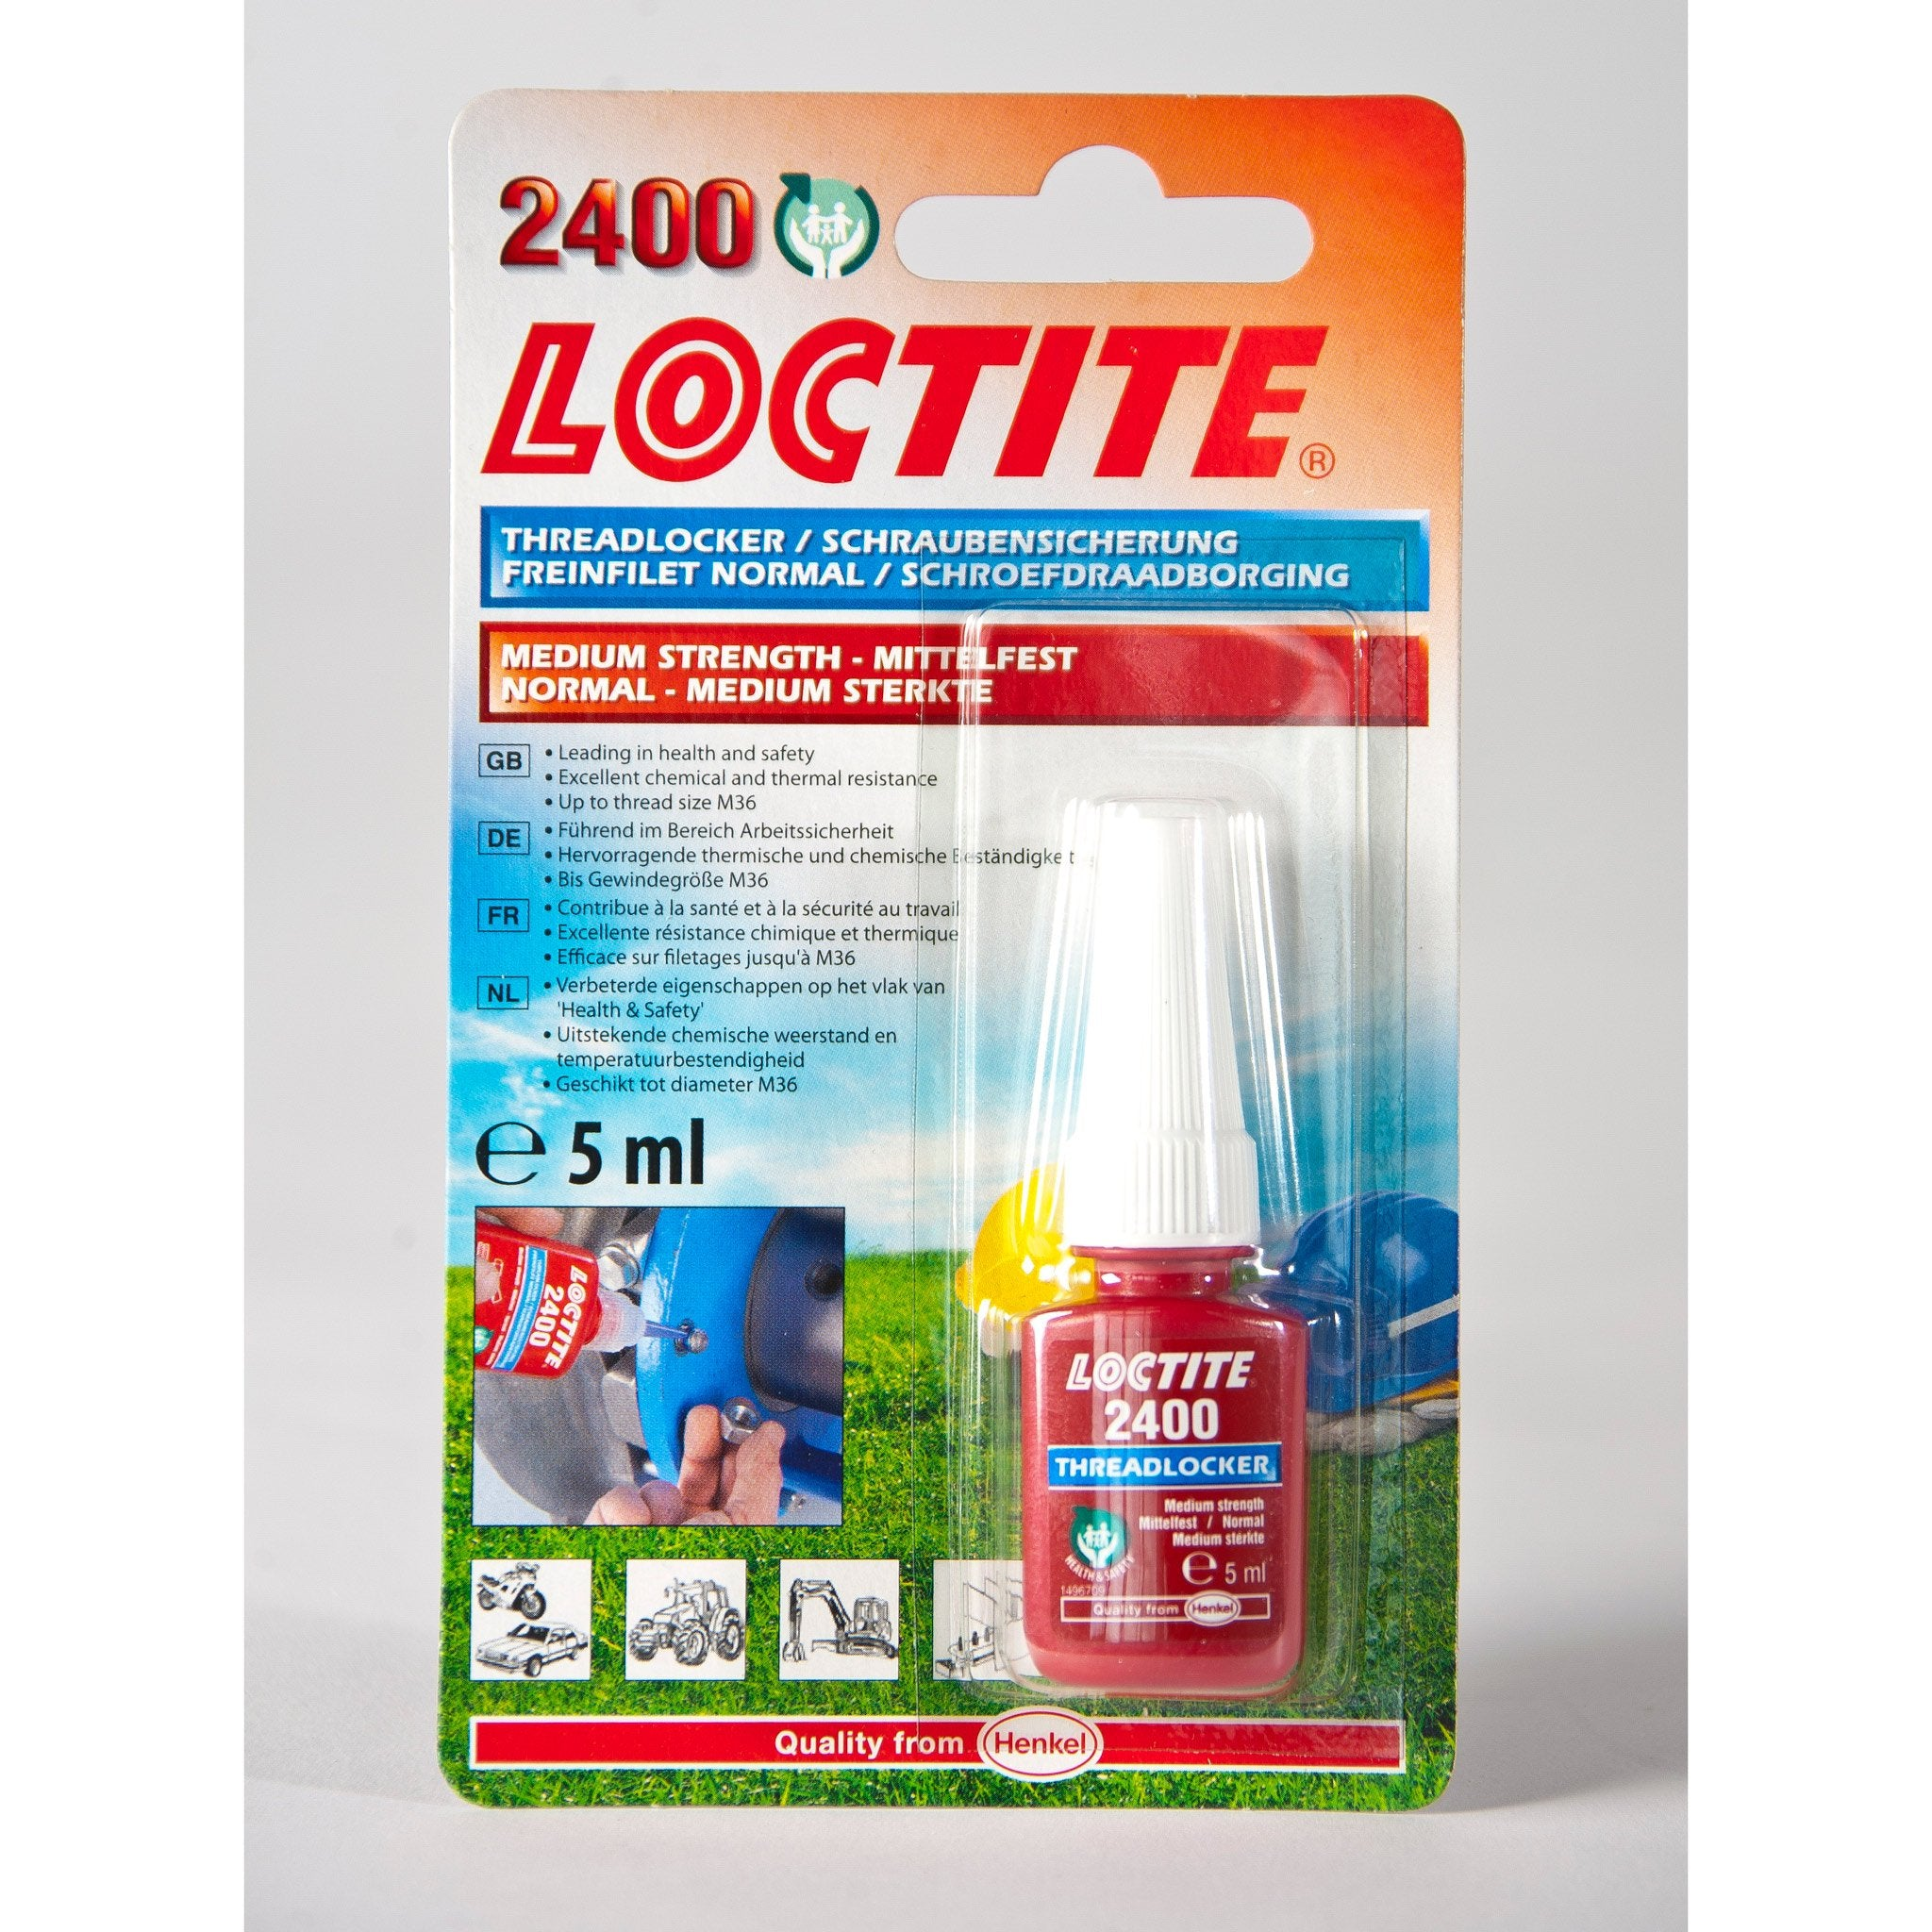 Loctite Threadlocker - Arthur Beale